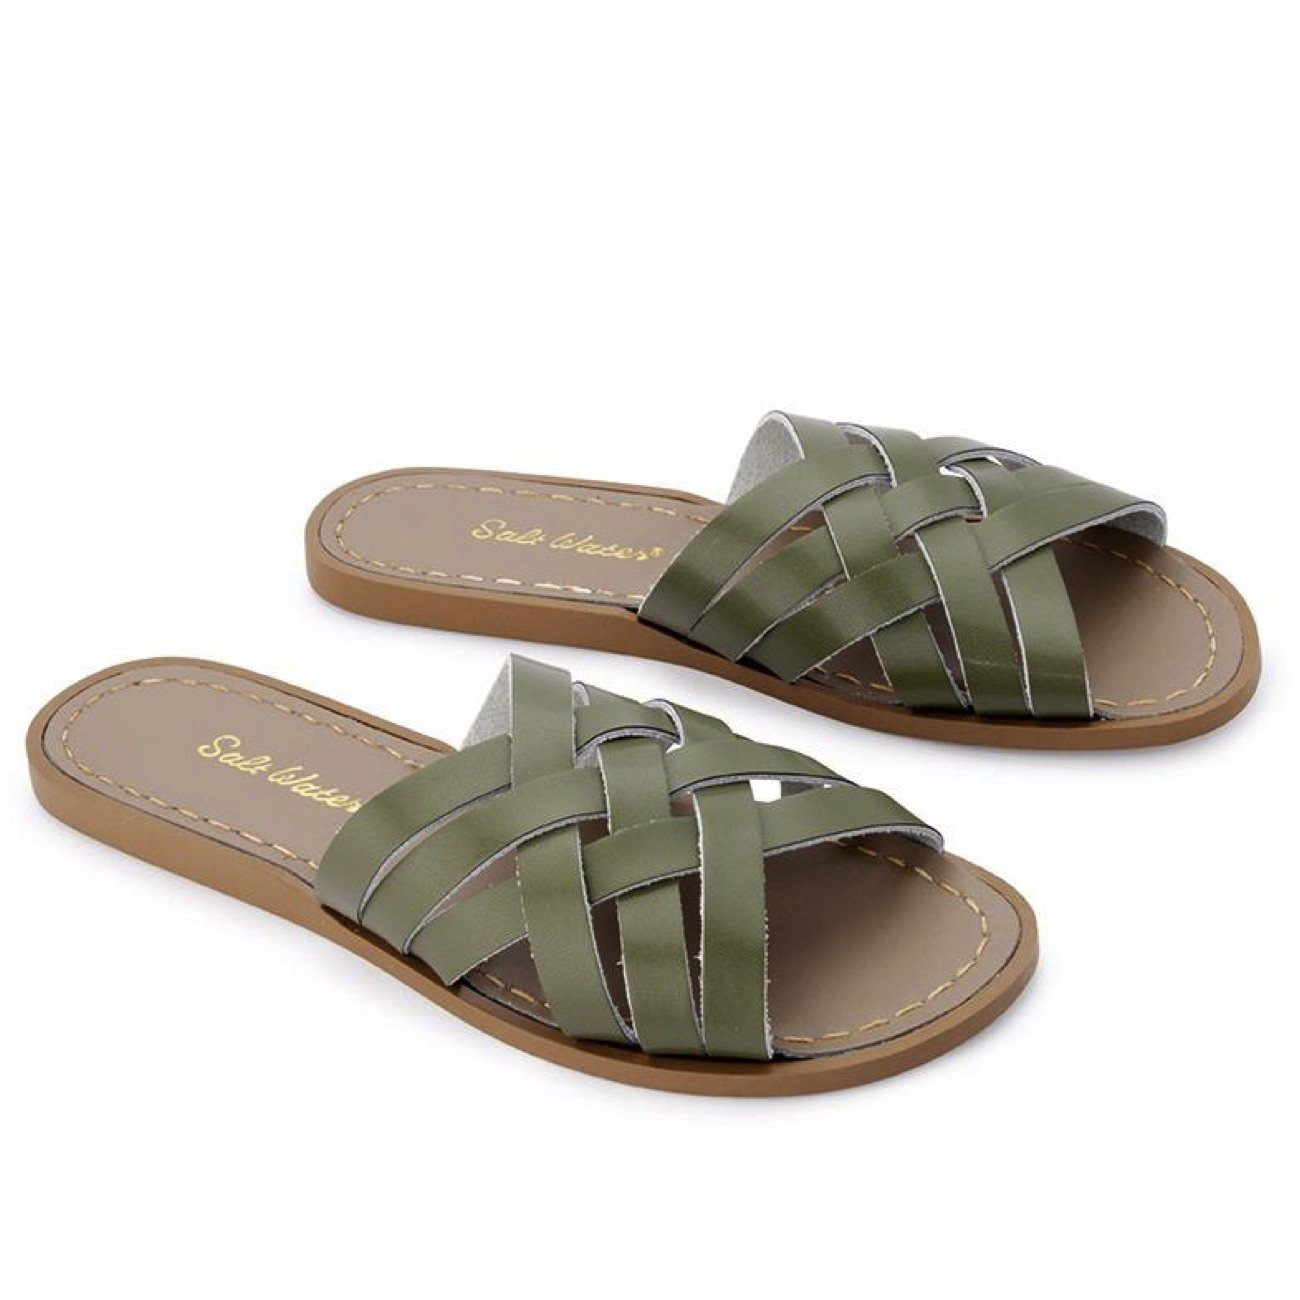 Salt Water Sandals, Retro Slide, Adult, Olive Sandals Salt Water Sandals Olive A6